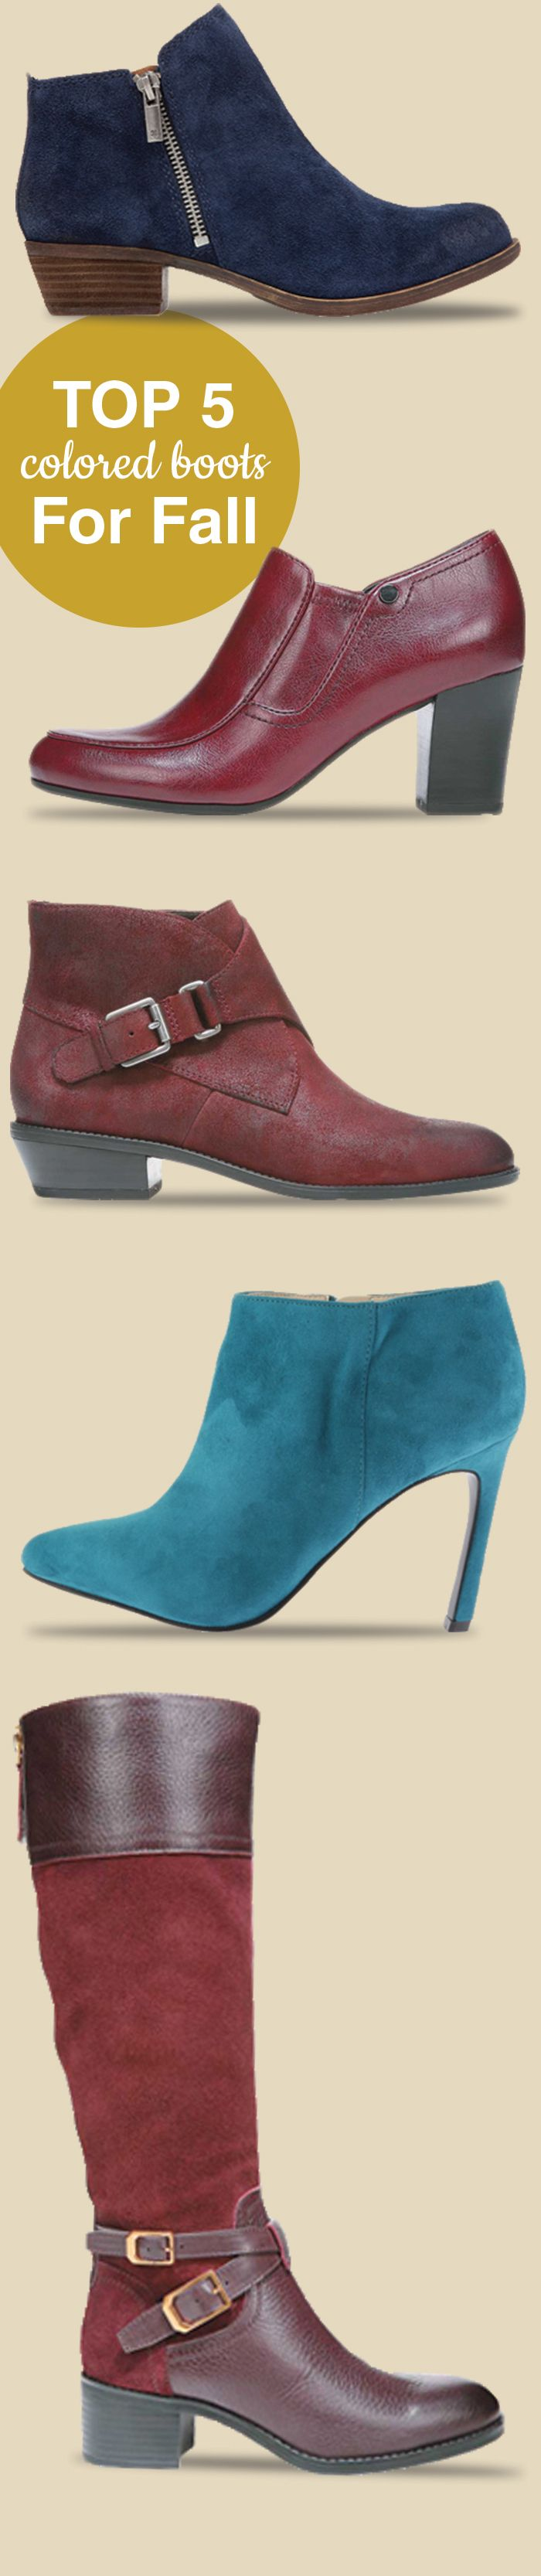 These top styles are must-haves for the fall. Shop for them, and more, at ShoeBuy!